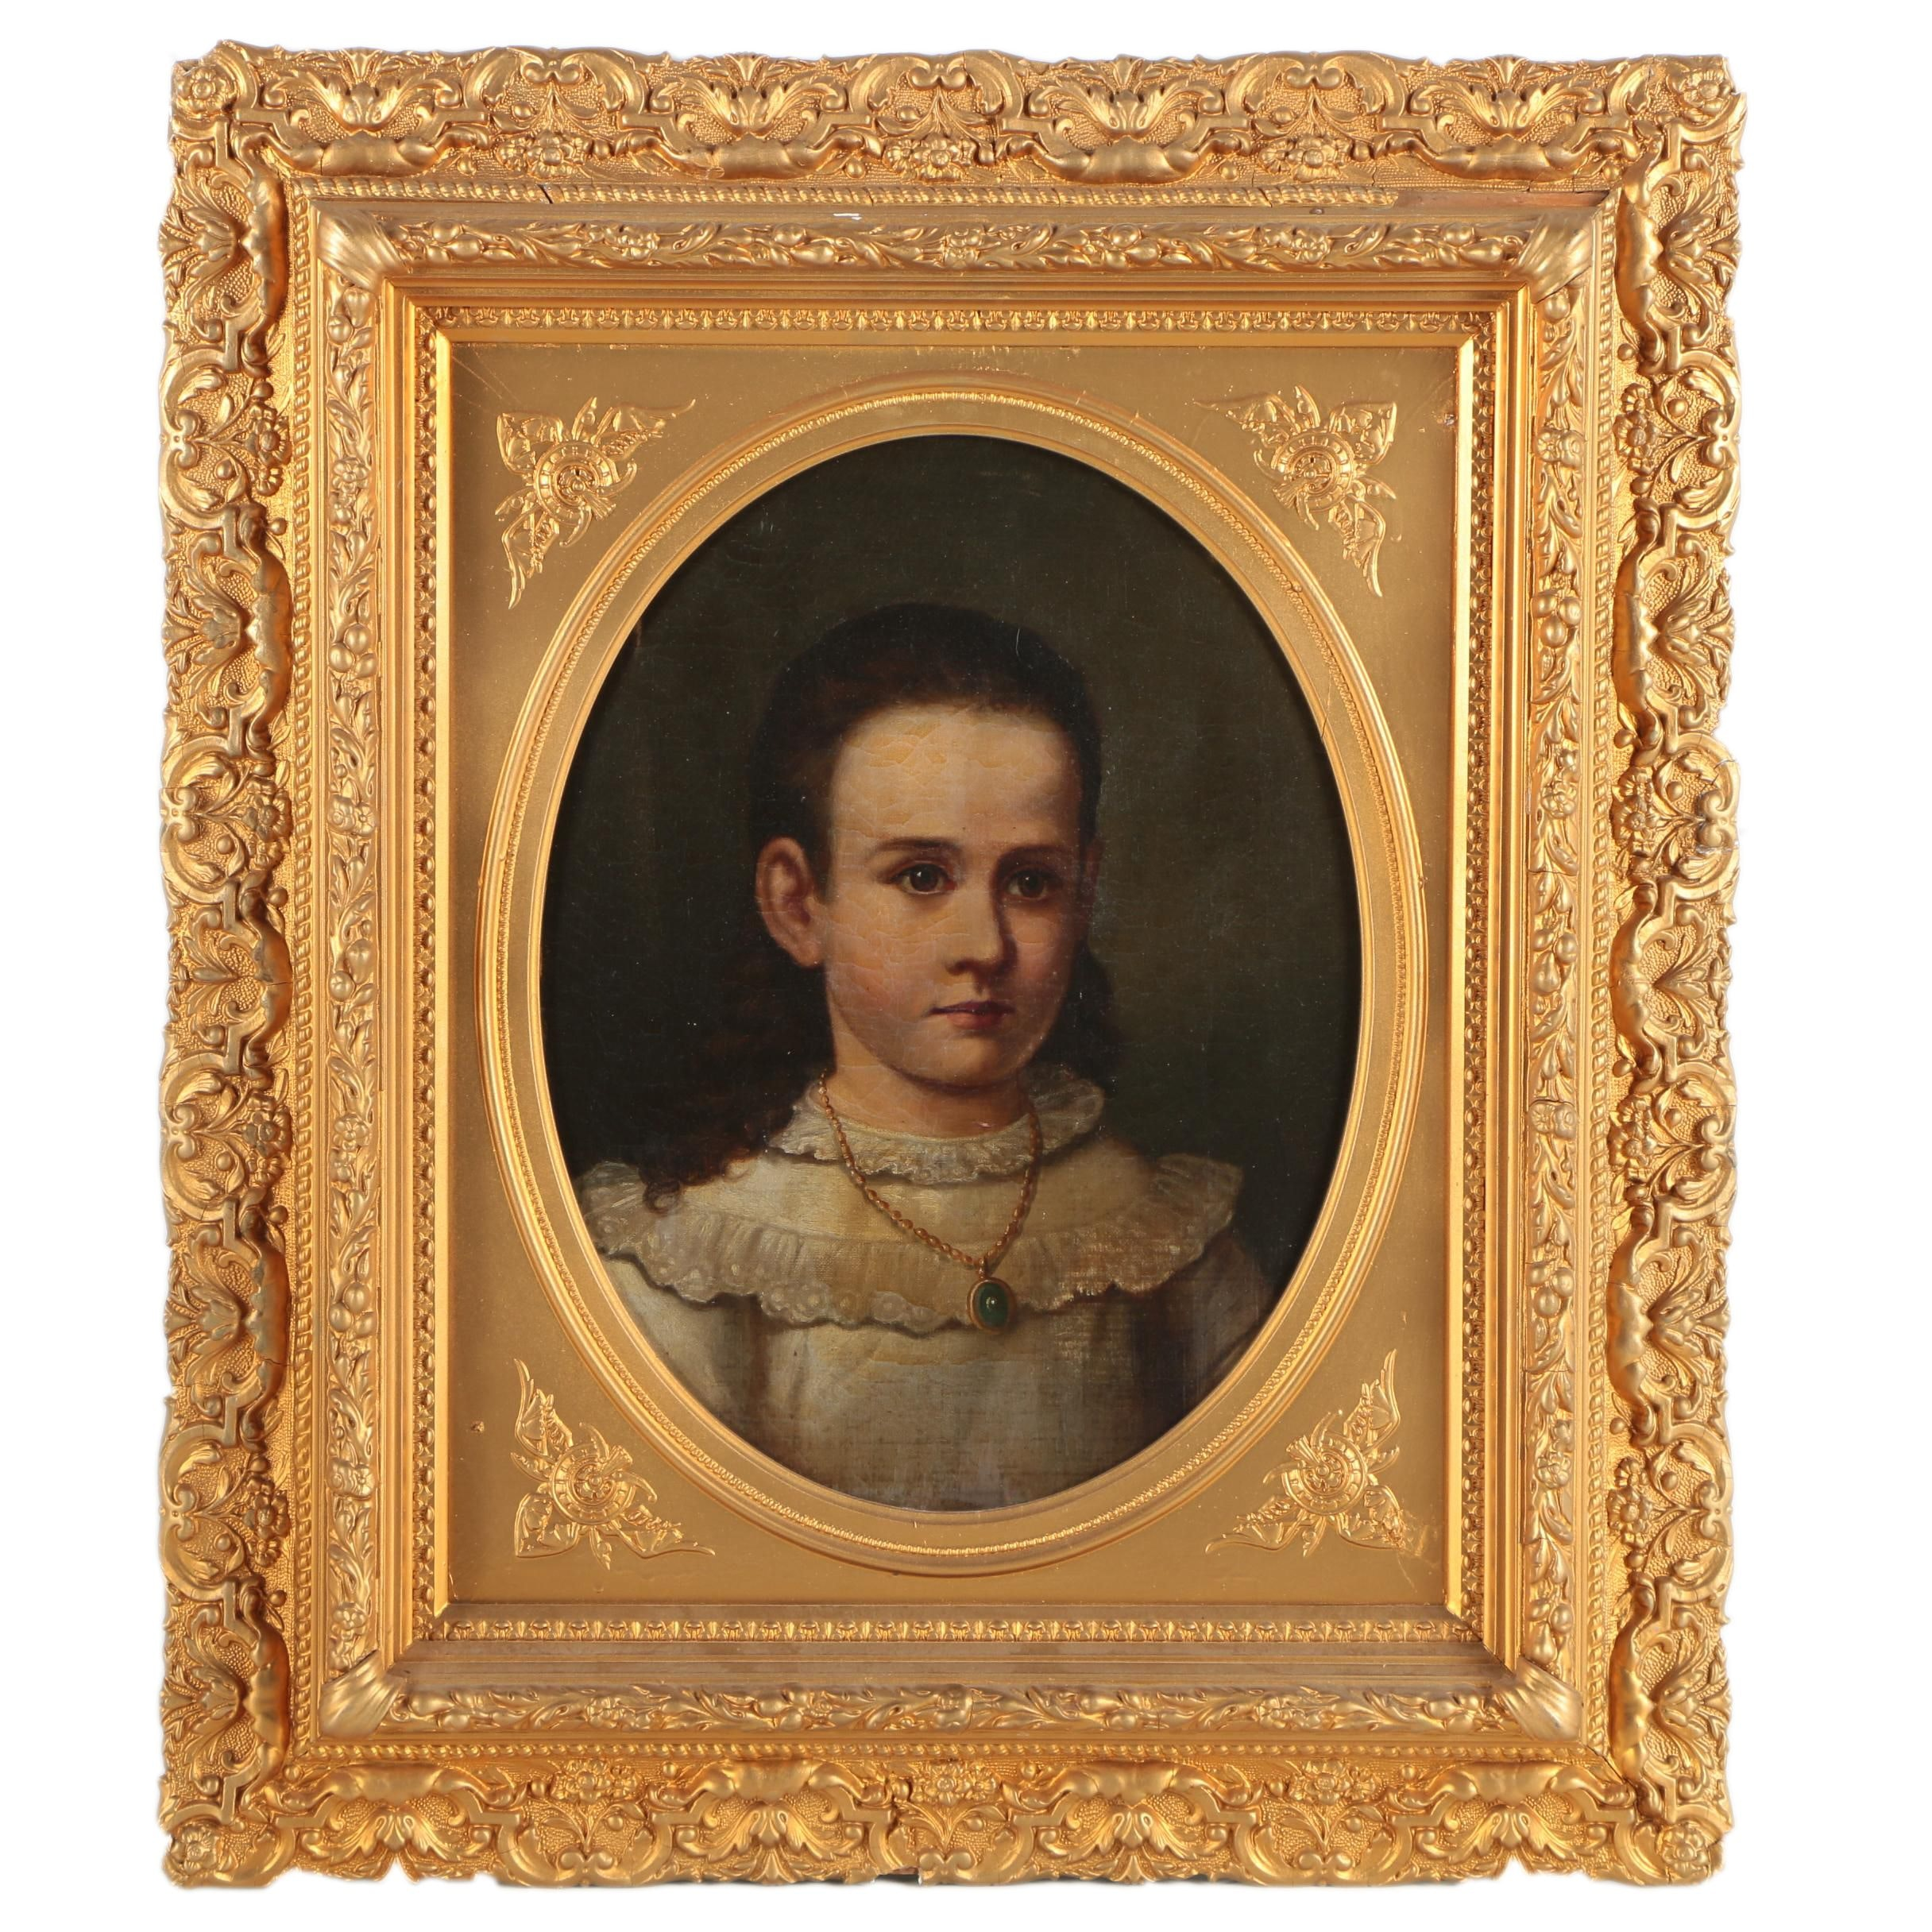 Antique Oil Portrait Painting in Ornate Frame